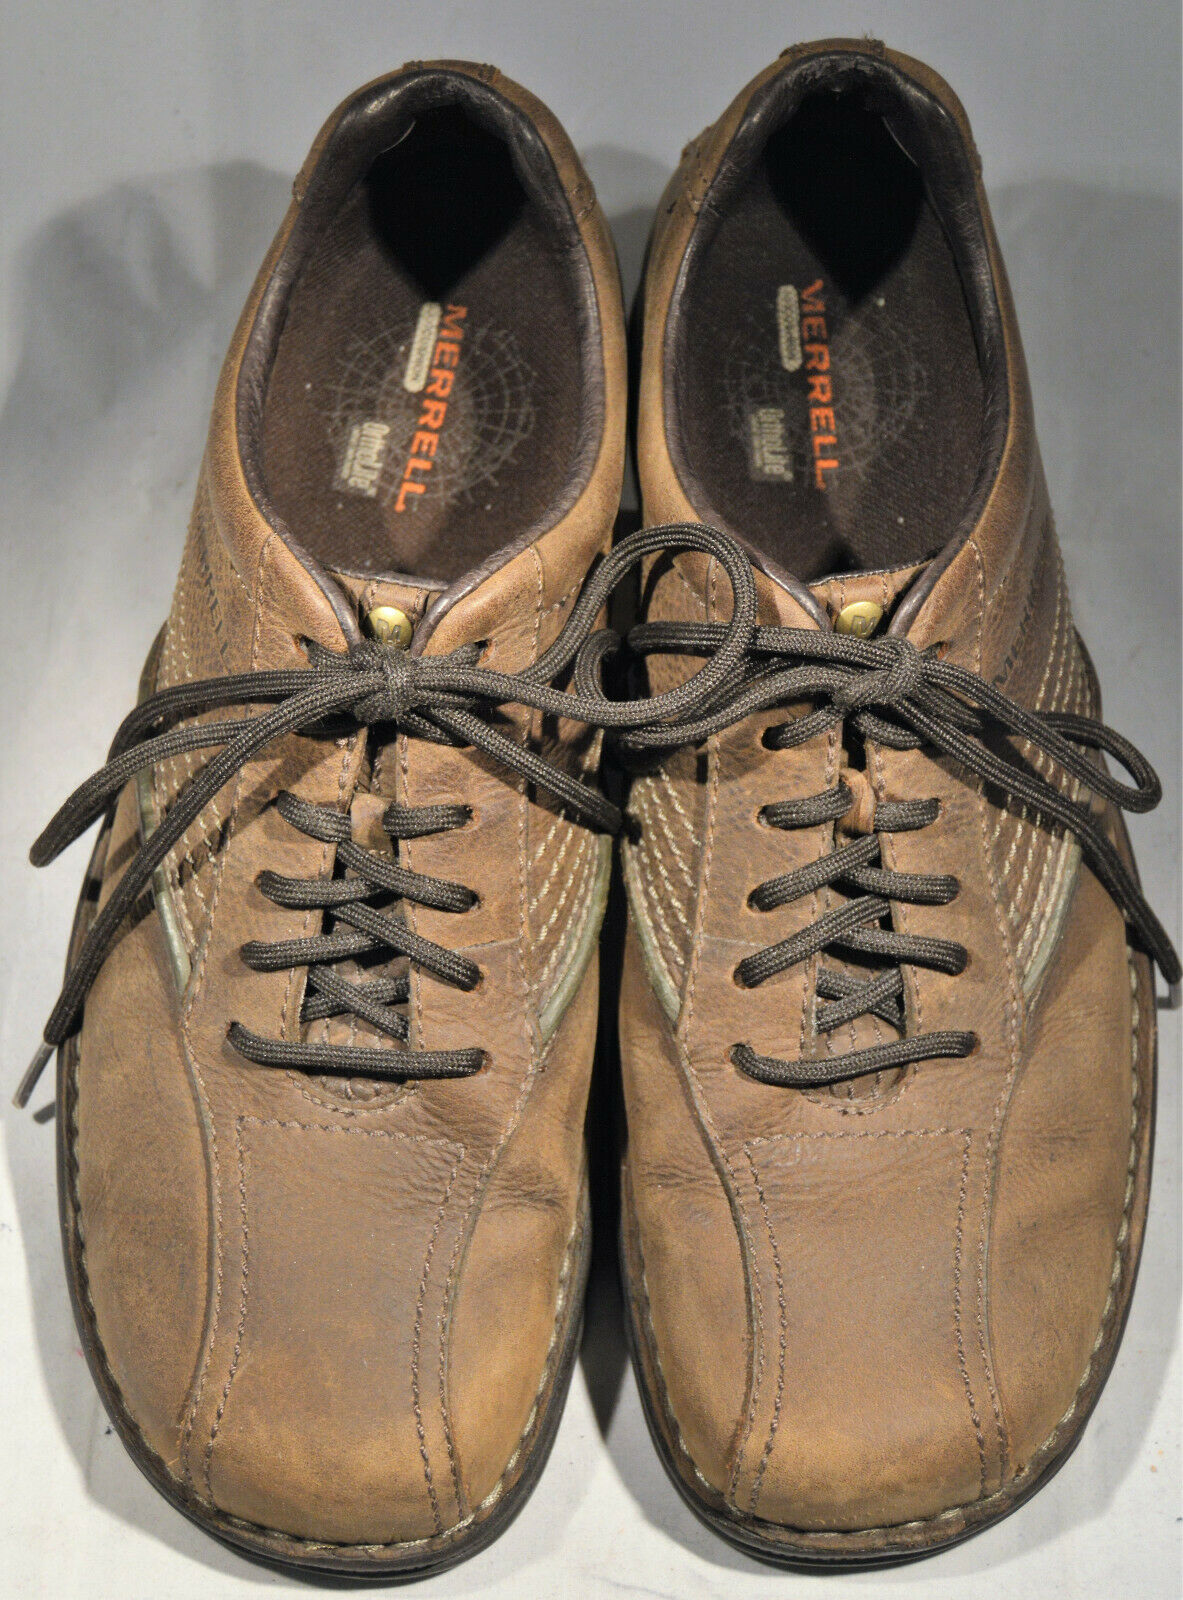 Men's shoes, Merrill, Oxford, Brown, Size12